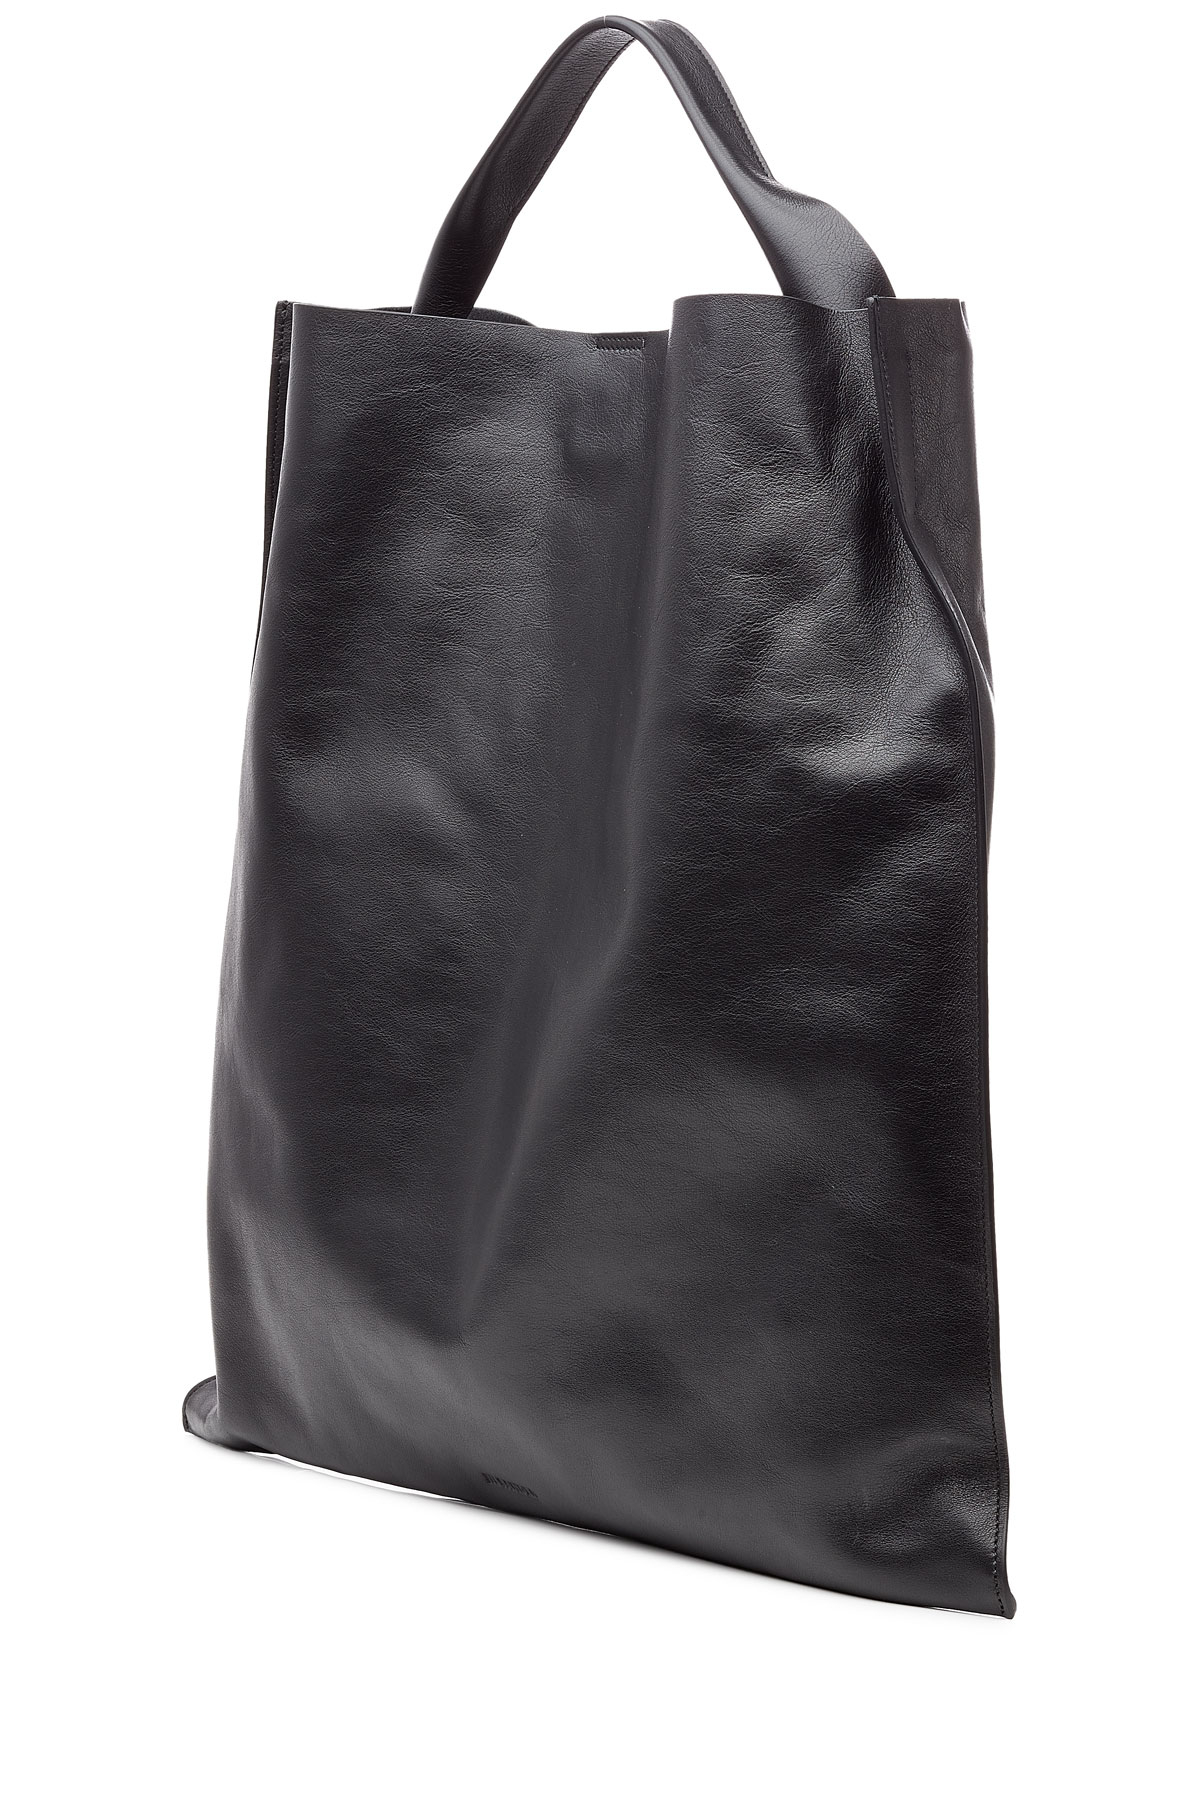 deb69490a0e96 Lyst - Jil Sander Xiao Leather Tote in Black